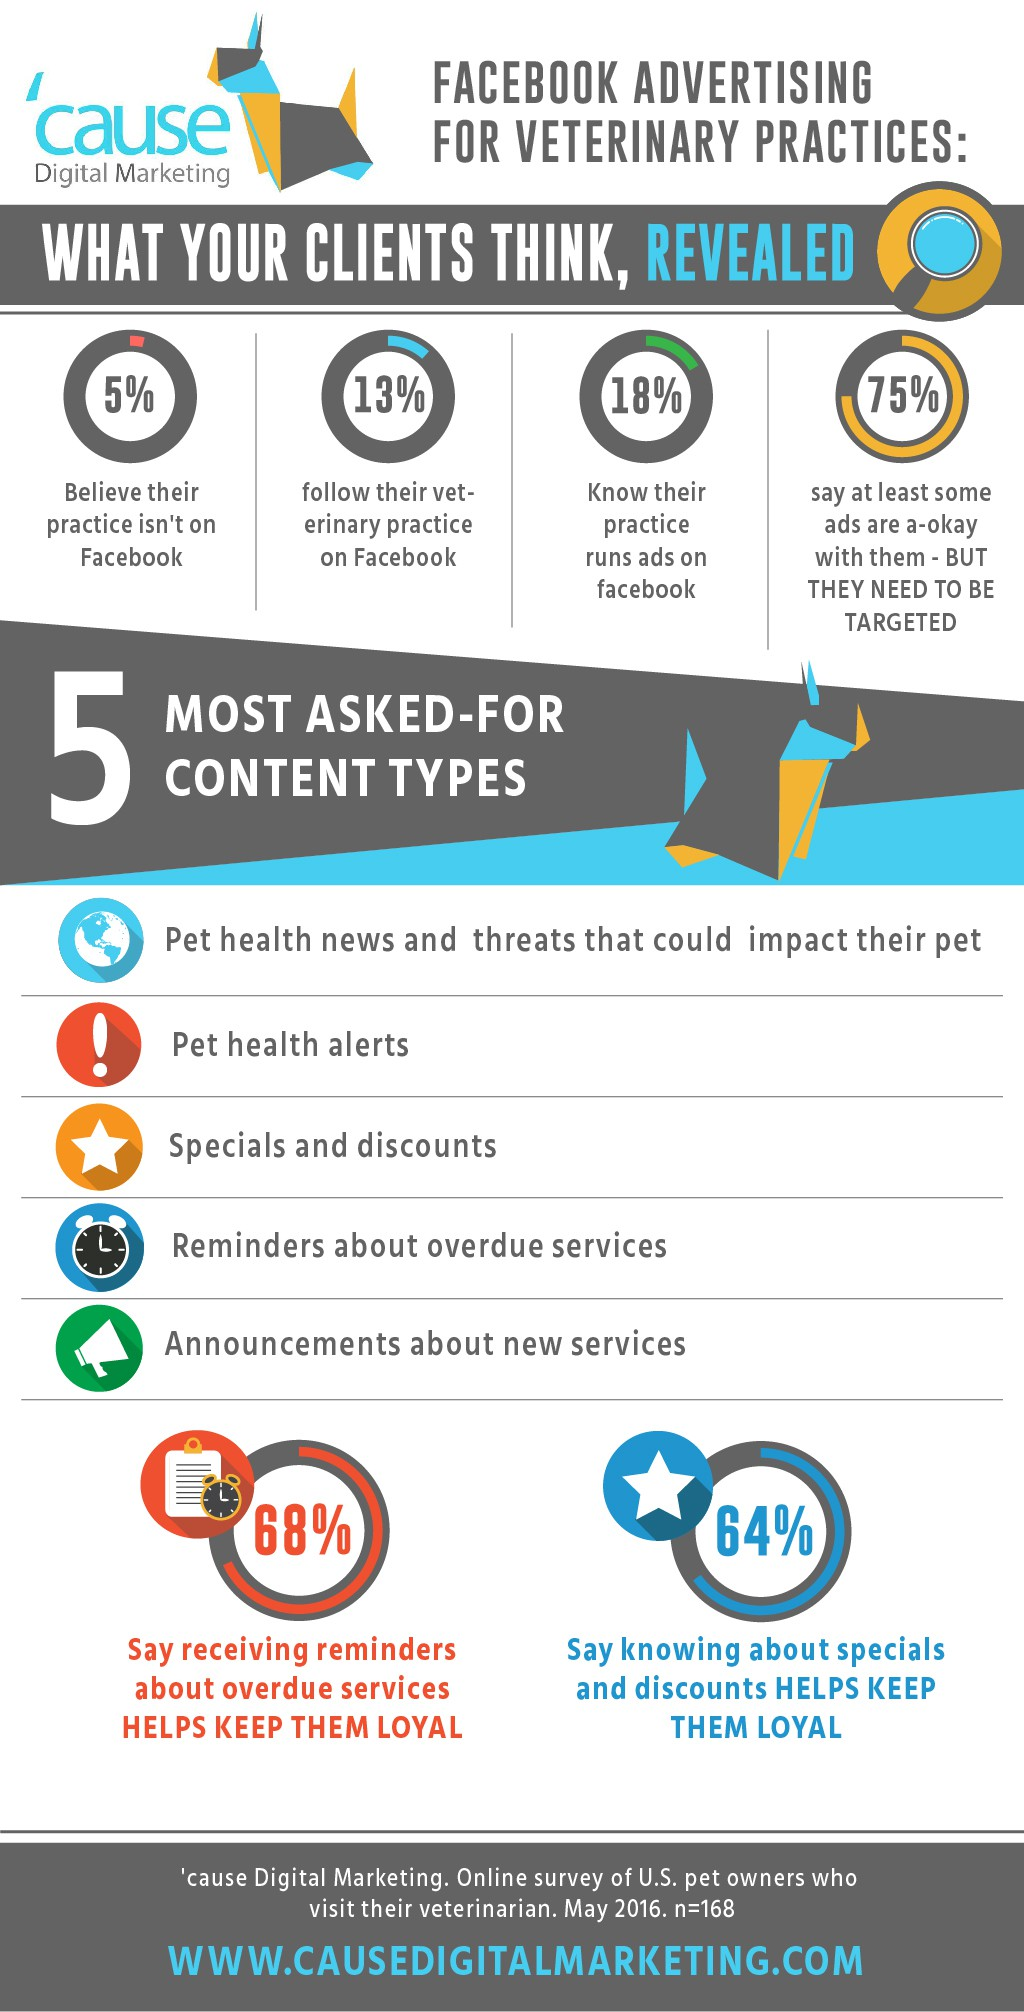 Create a captivating infographic about pets, vets and Facebook!